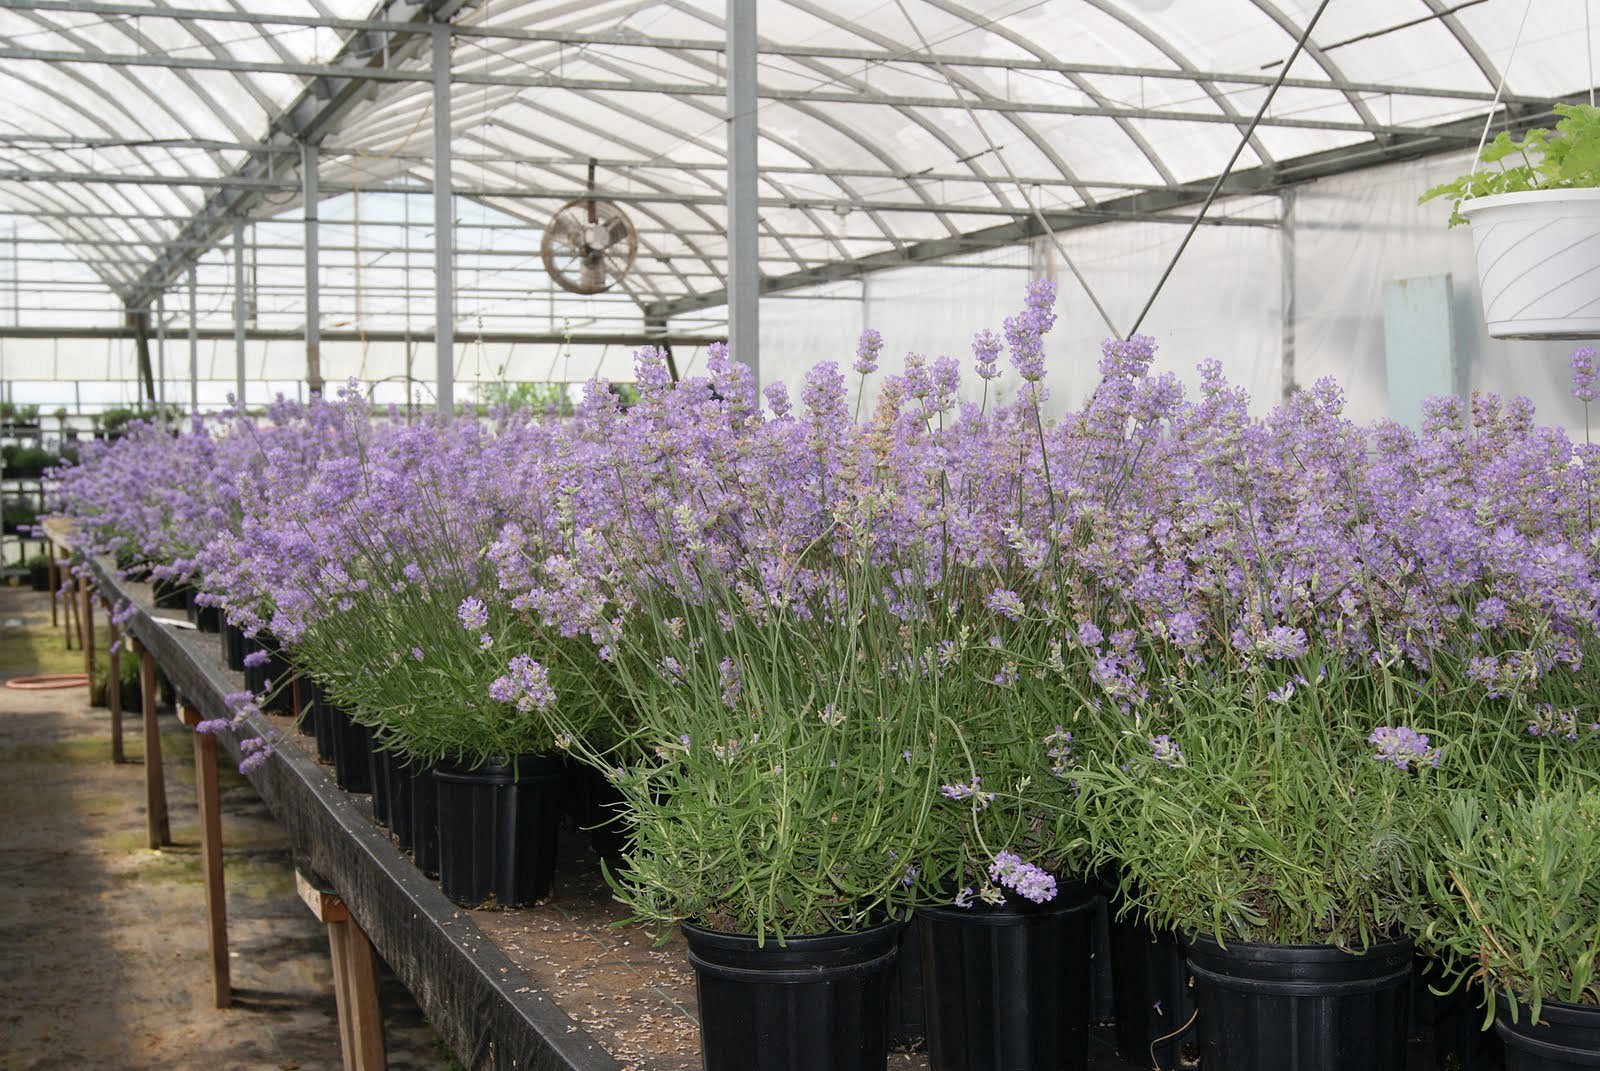 Lavender Greenhouse in Niagara-on-the-Lake Google image from http://www.traveladdictonabudget.com/2010/06/lavender-boutique-in-niagara-on-lake.html